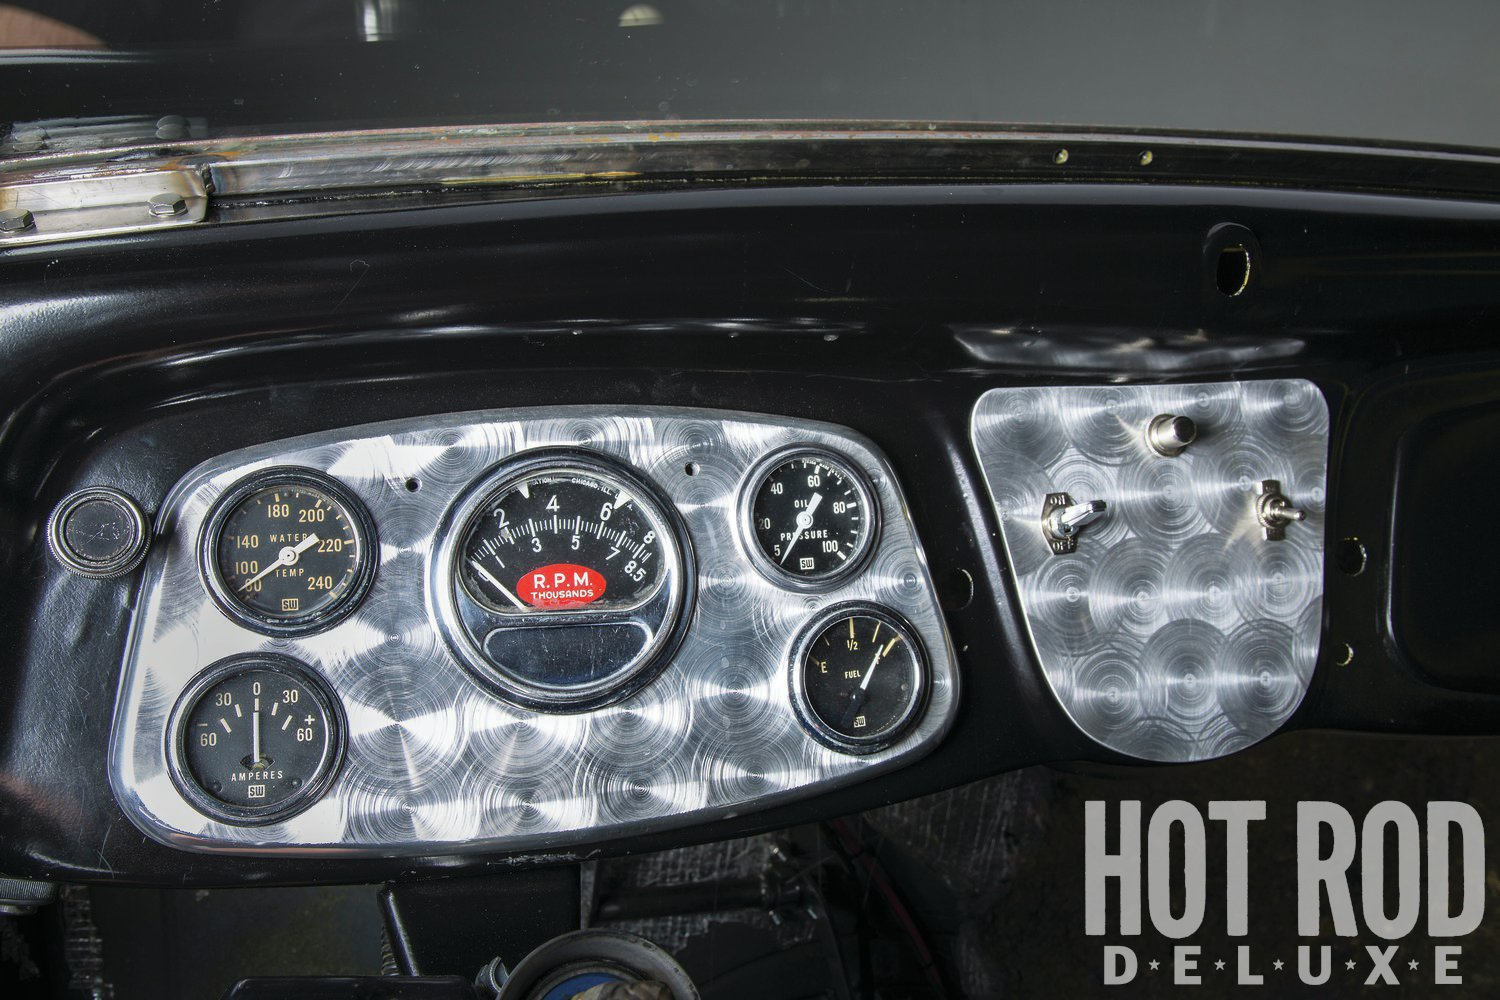 """Gil was somewhat dismissive of the coupe's interior, shrugging his shoulders and describing it as """"nothing special."""" We think it's well turned out, simple, but straightforward and effective. Hurst shifter for the T10 has the right amount of patina; the turned gauge panel is home to vintage Sun tach and Stewart-Warner meters."""